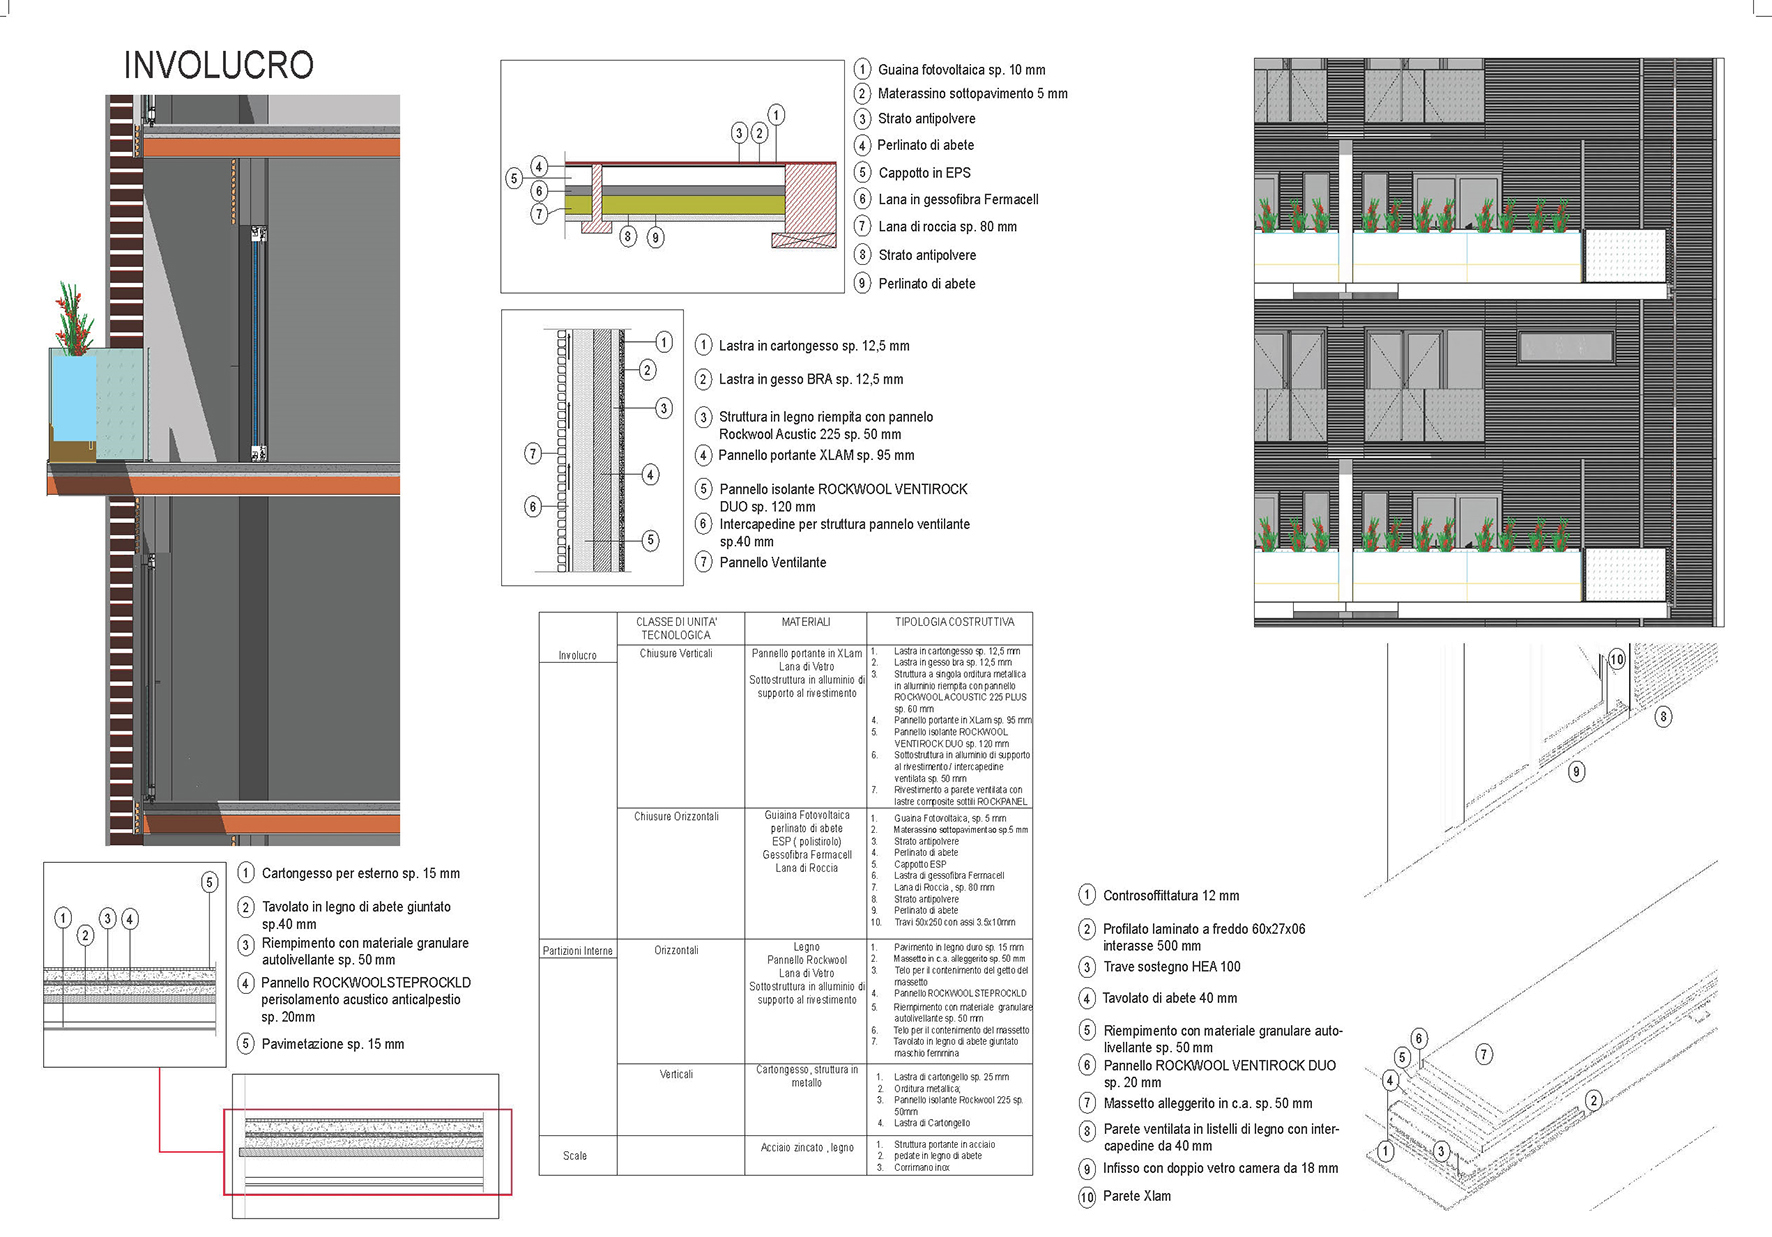 Construction of the new envelope at openings and on a blind wall, of the new floors and partitions: characterization of functional layers and materials necessary for the definition of the BIM model